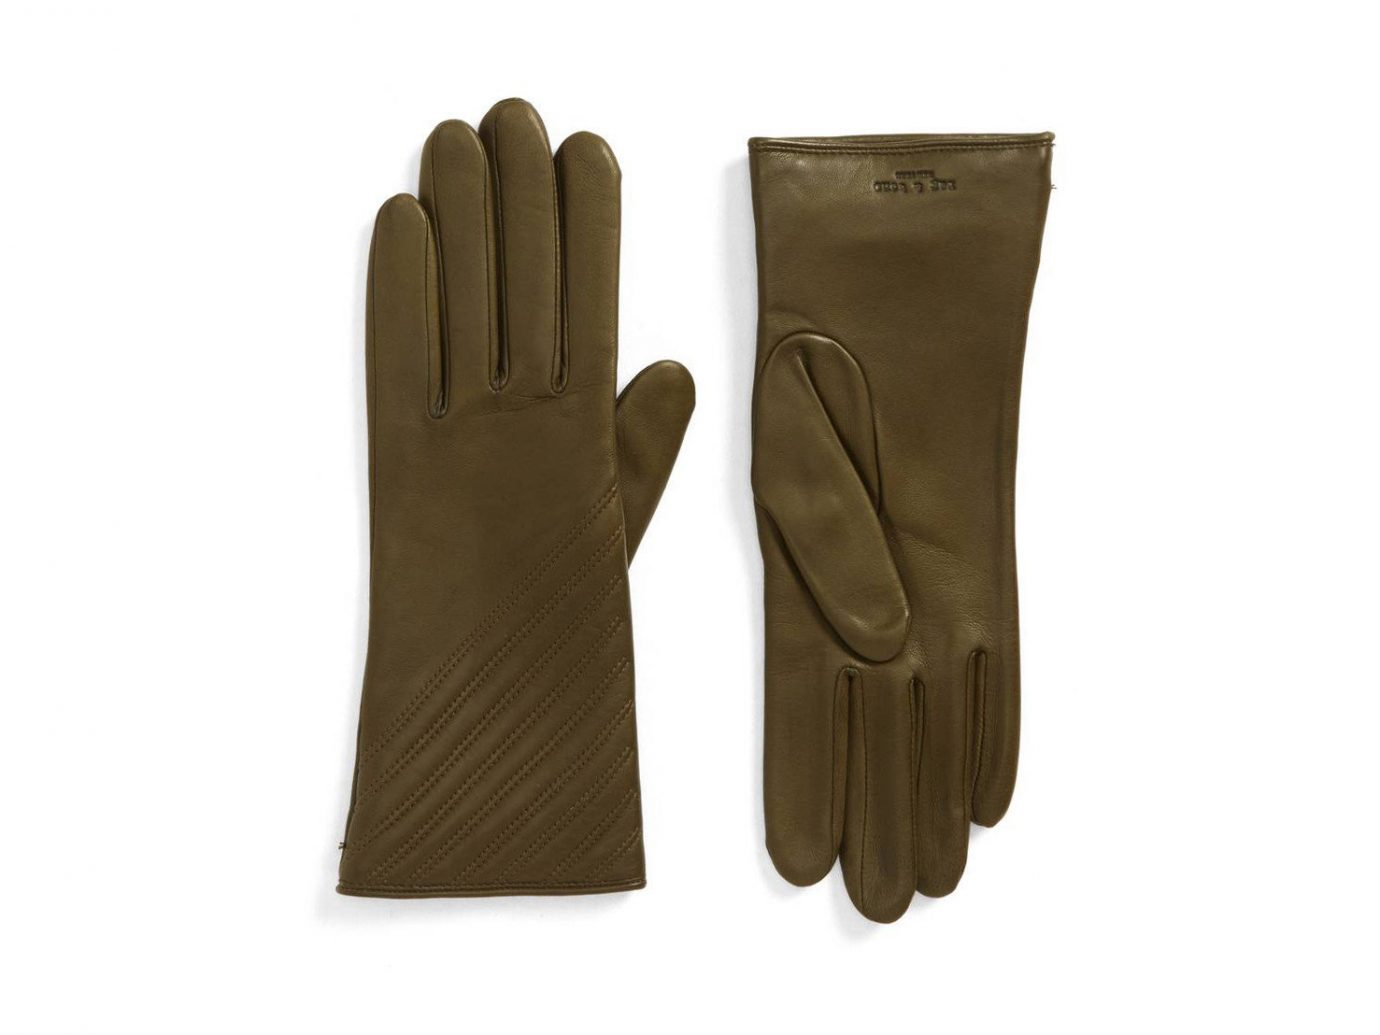 Trip Ideas handwear clothing safety glove glove bicycle glove product product design